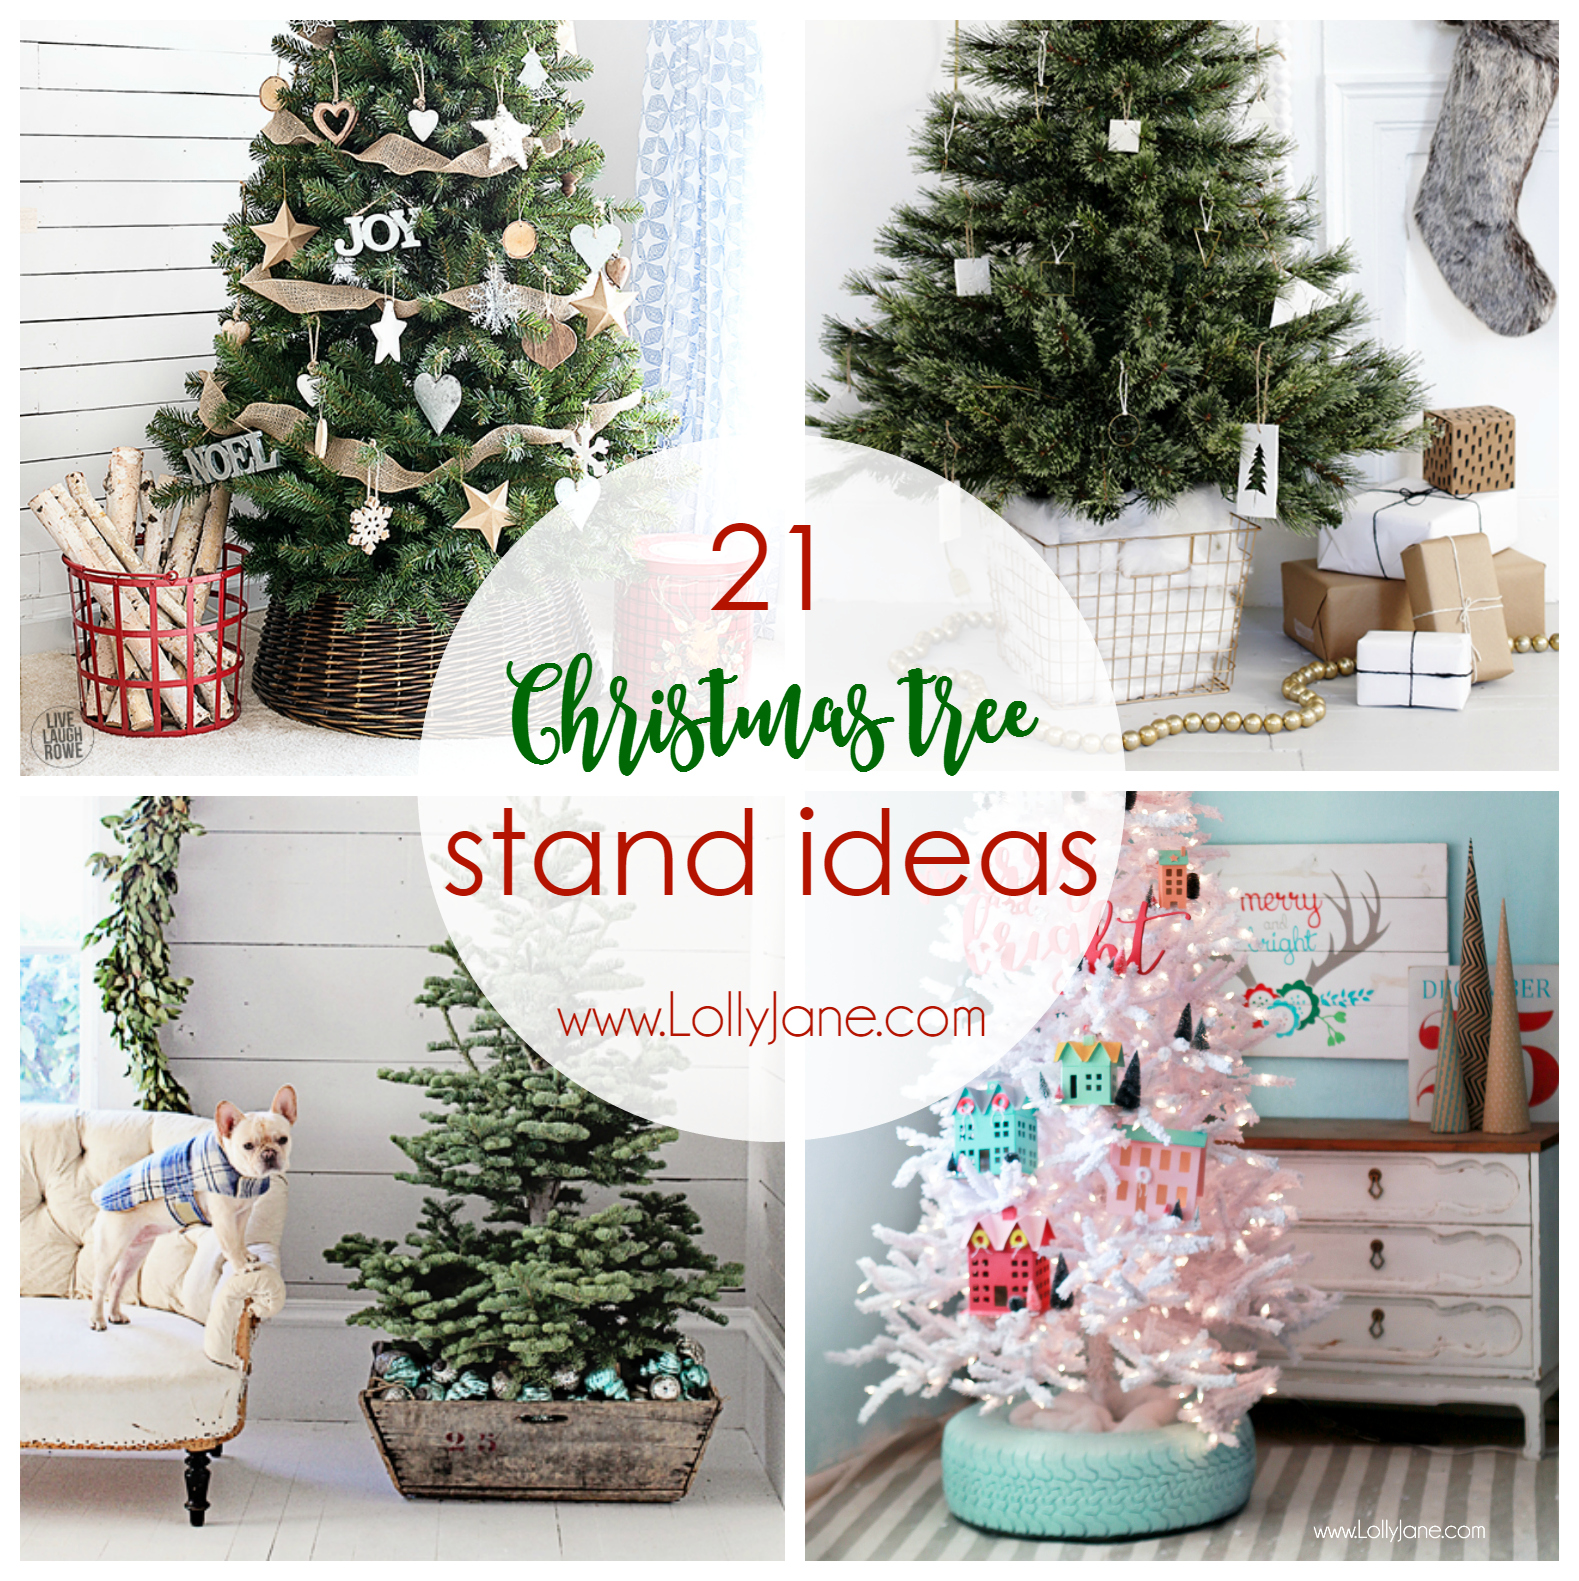 21 christmas tree stand ideas such unique tree stands love these fun christmas trees - Christmas Tree Stands